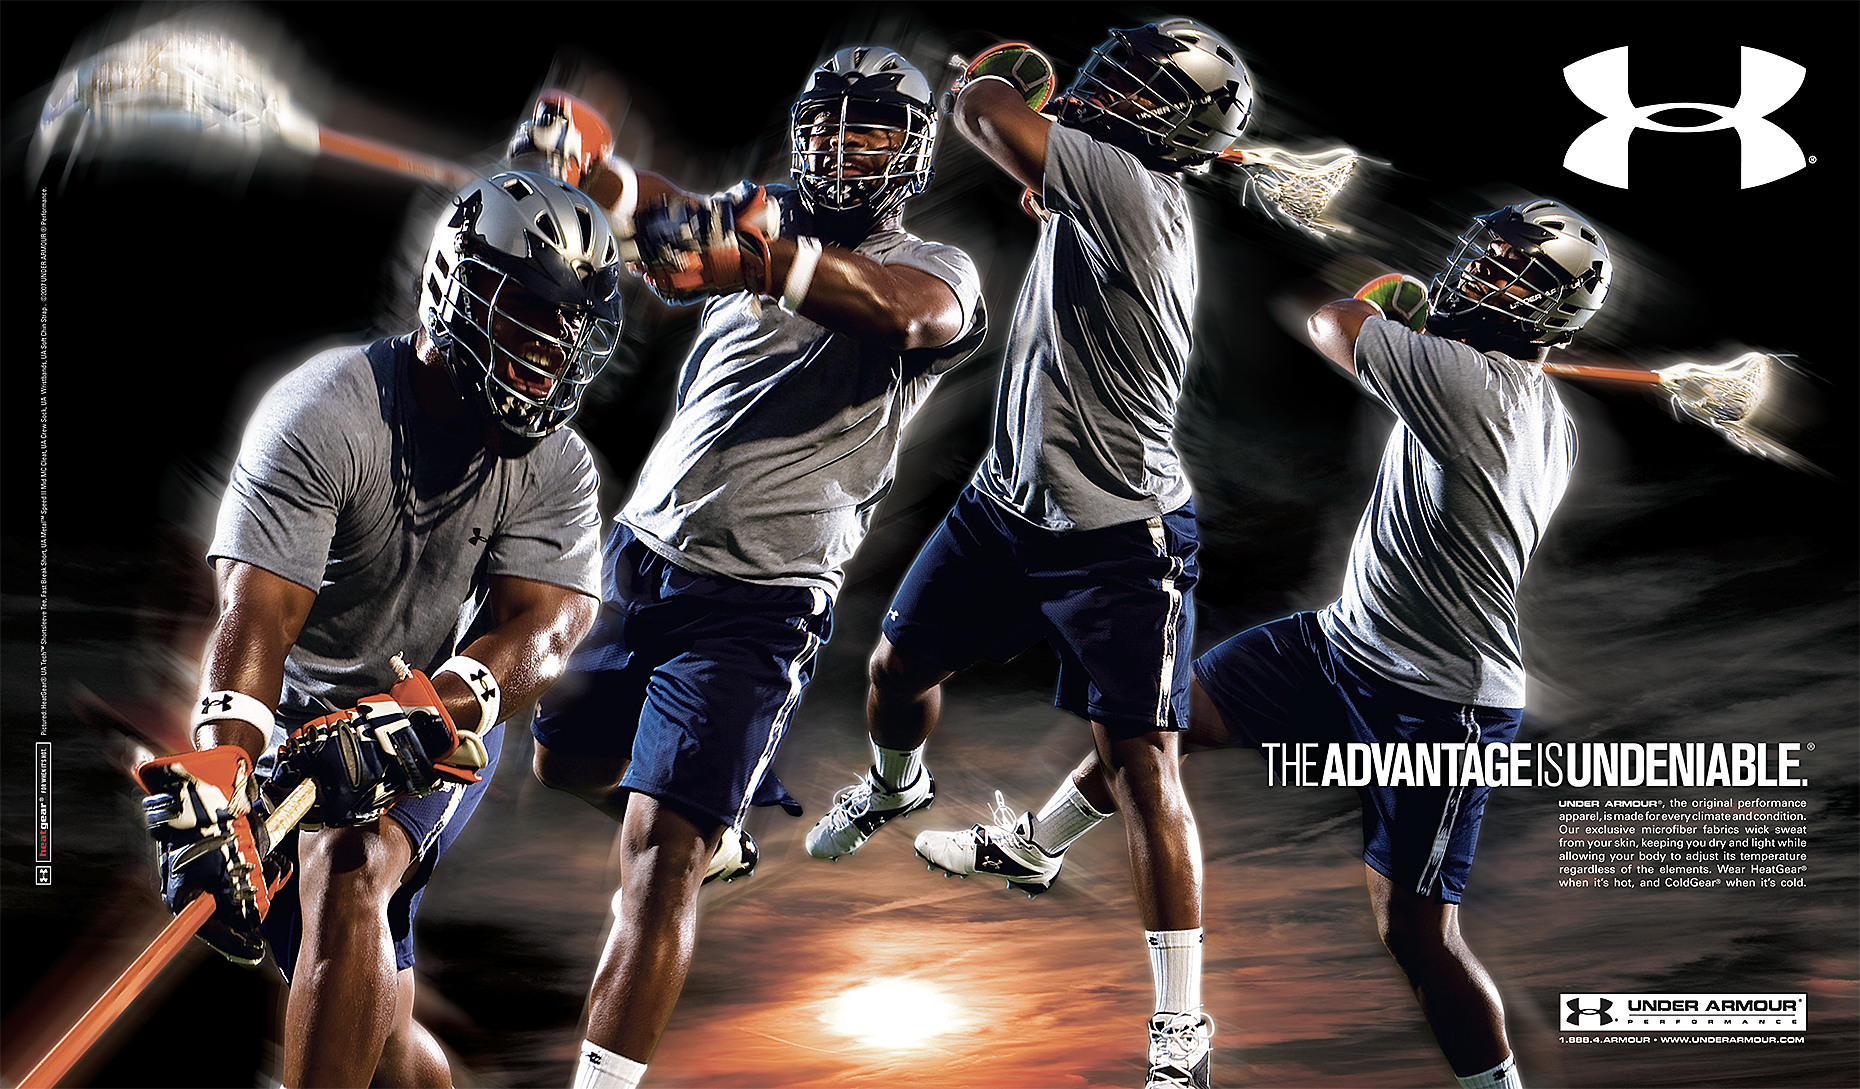 Under_Armour_ad_2_Seale